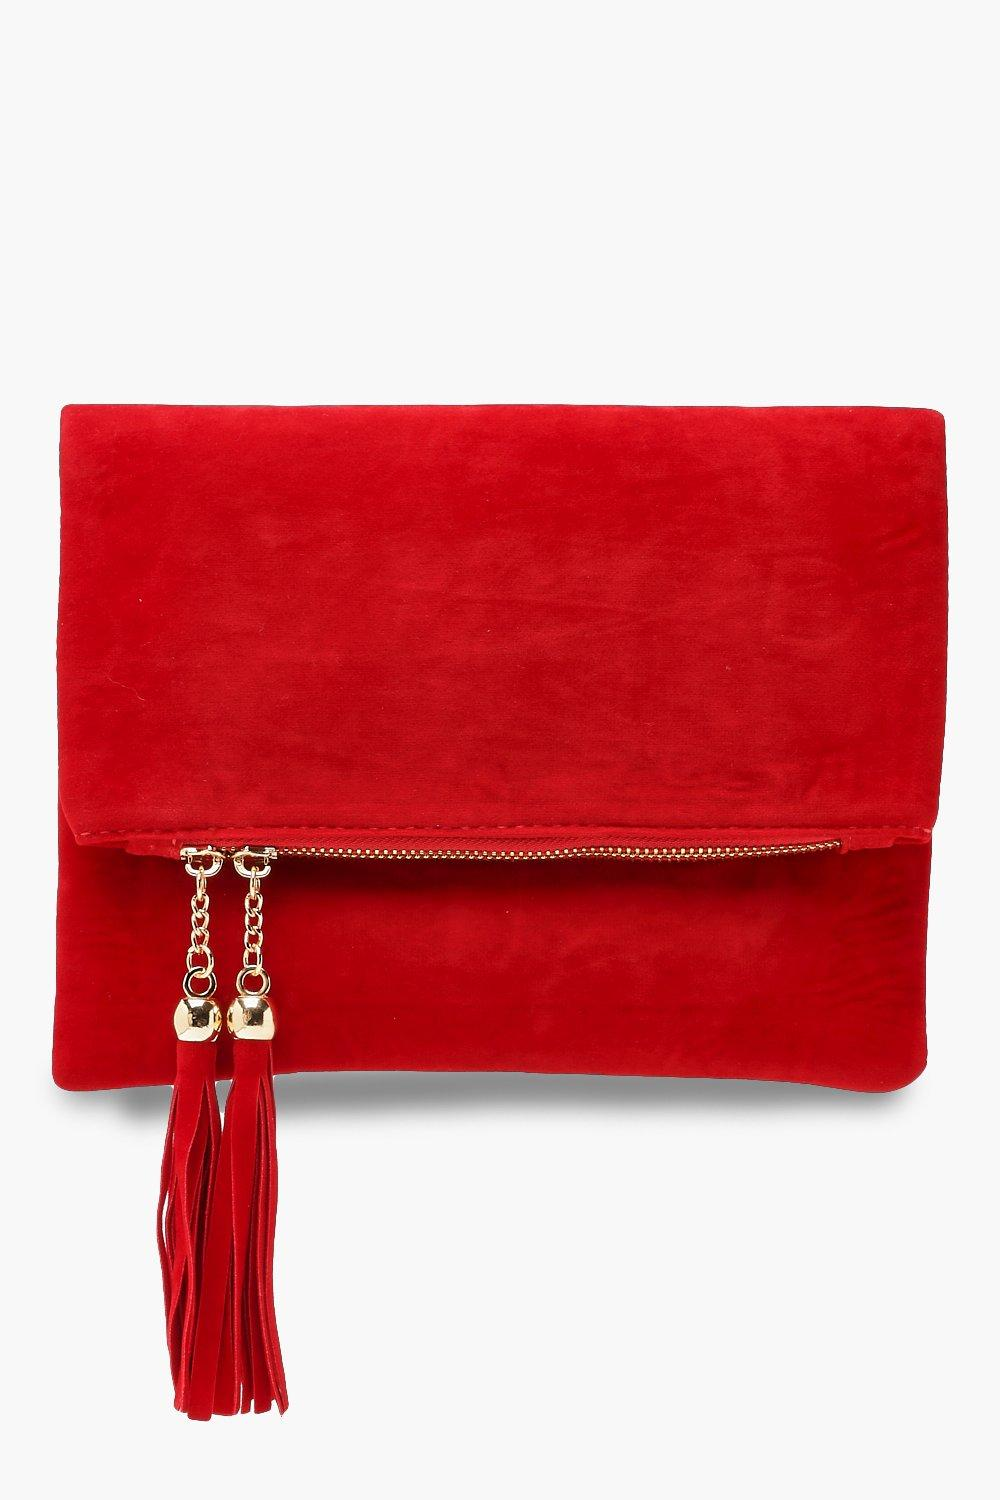 Double Tassel Foldover Clutch with Chain